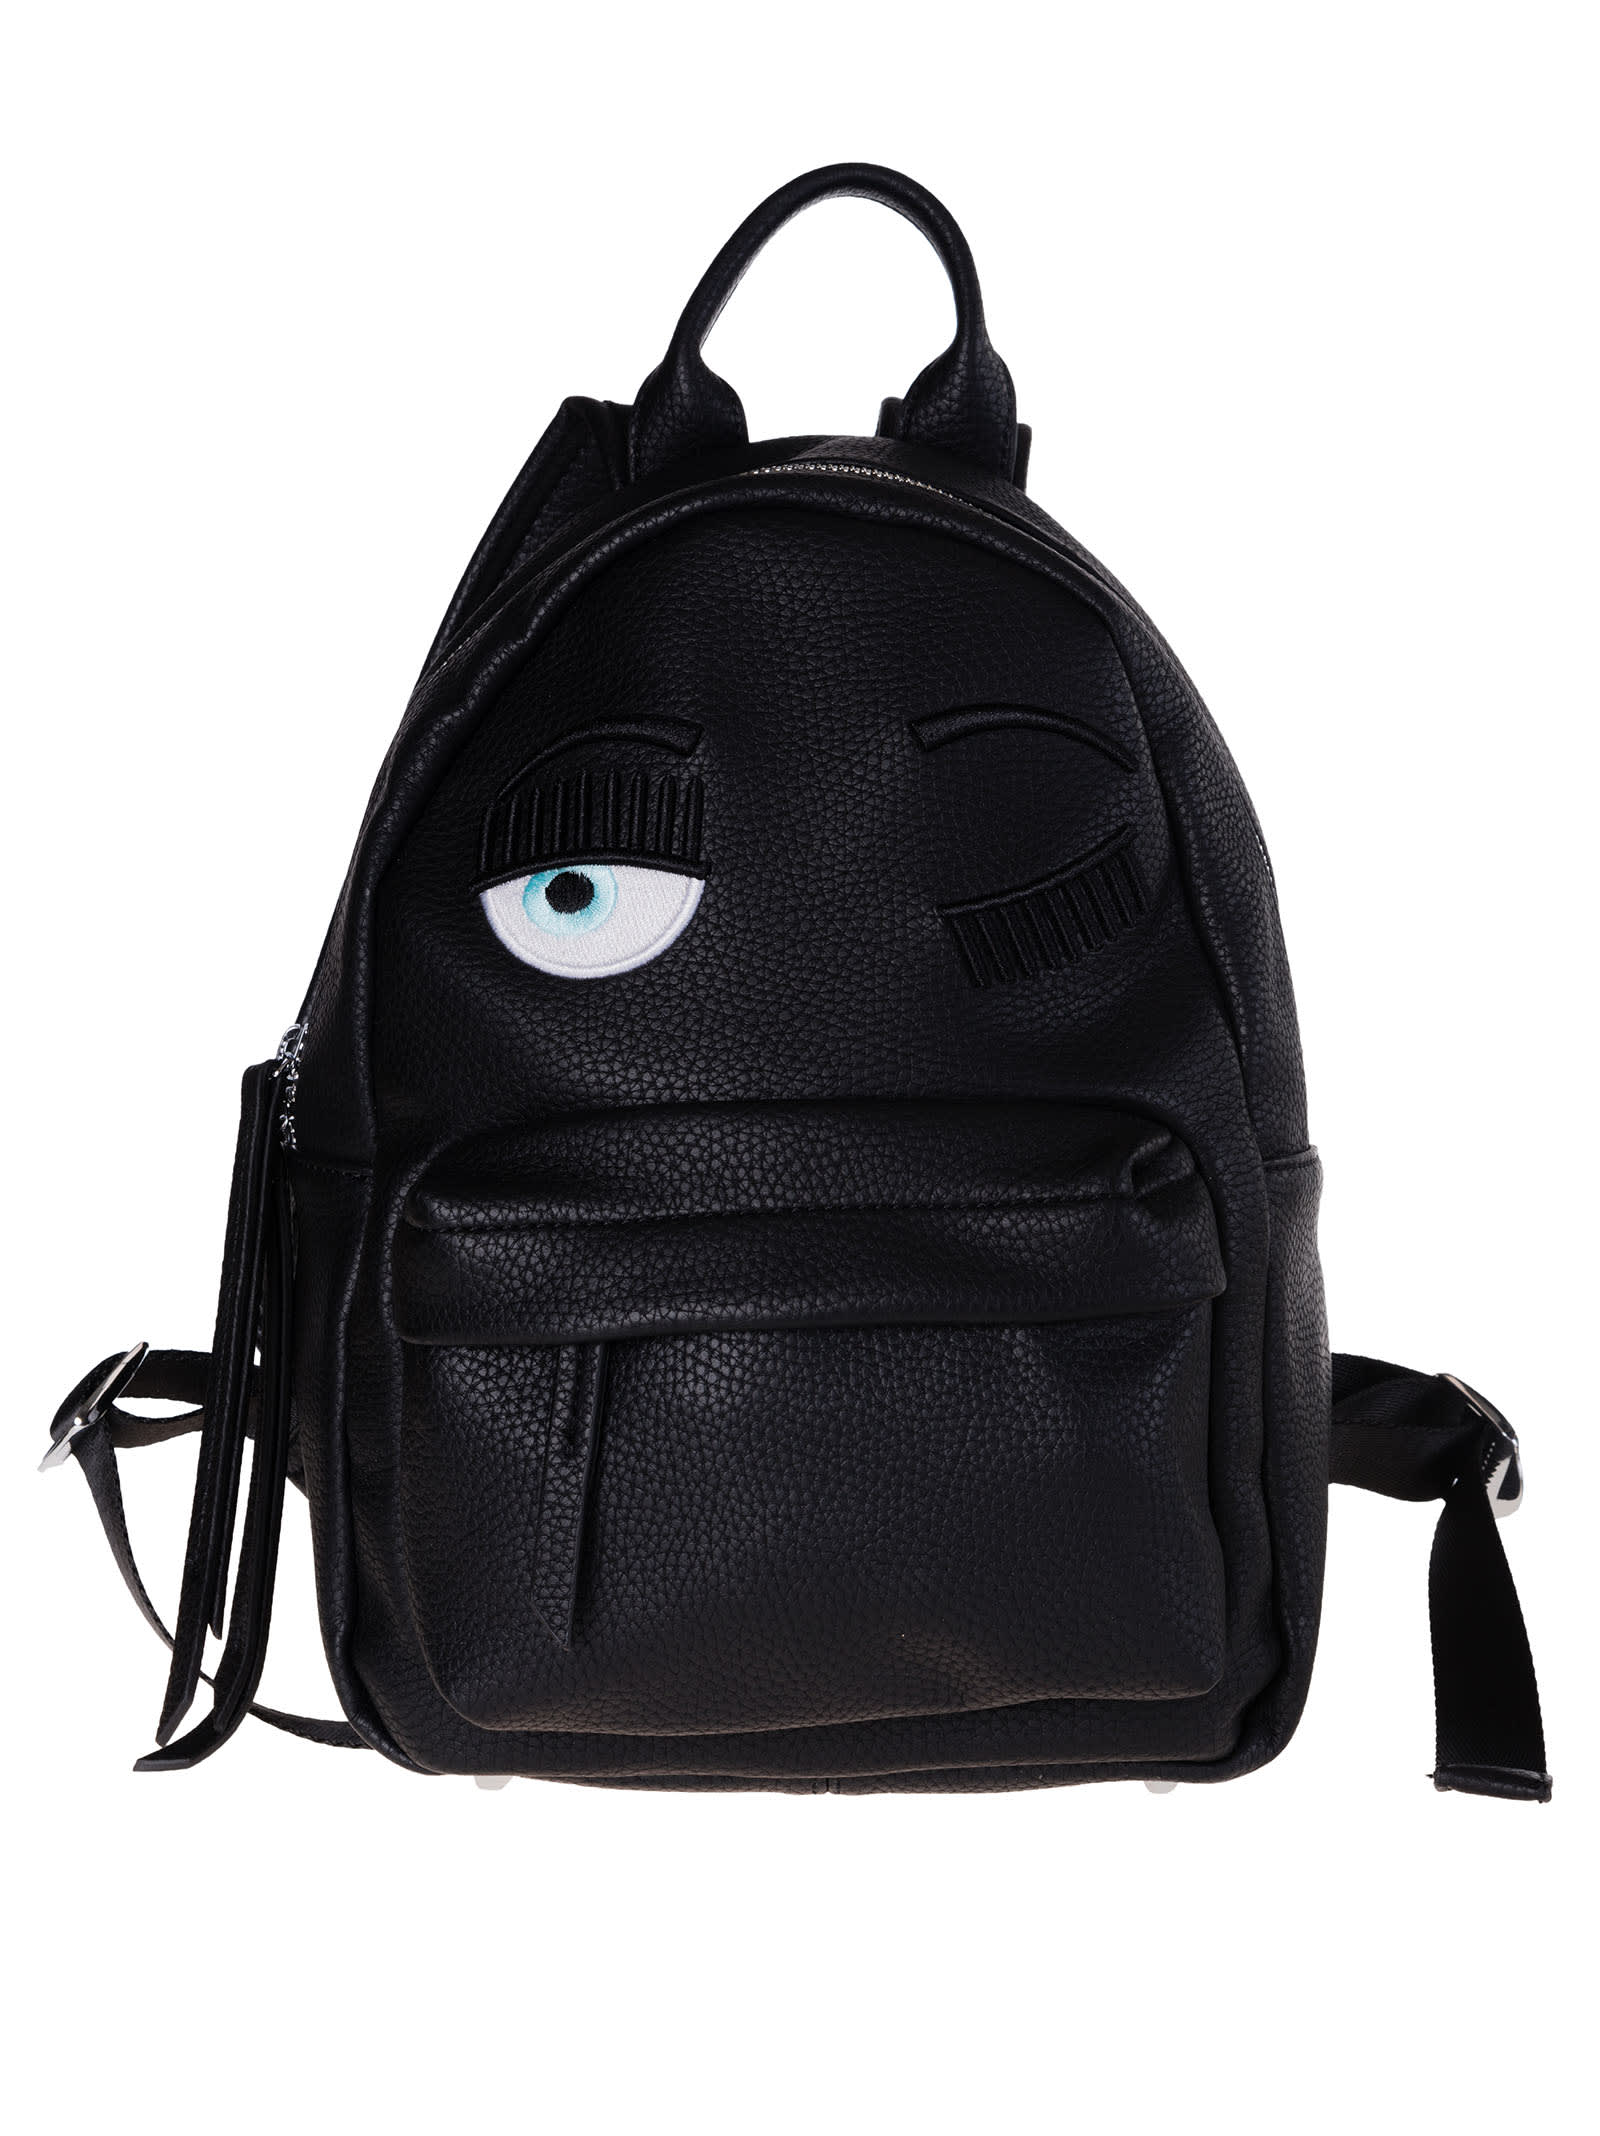 Chiara Ferragni FLIRTING EYE DESIGN BACKPACK